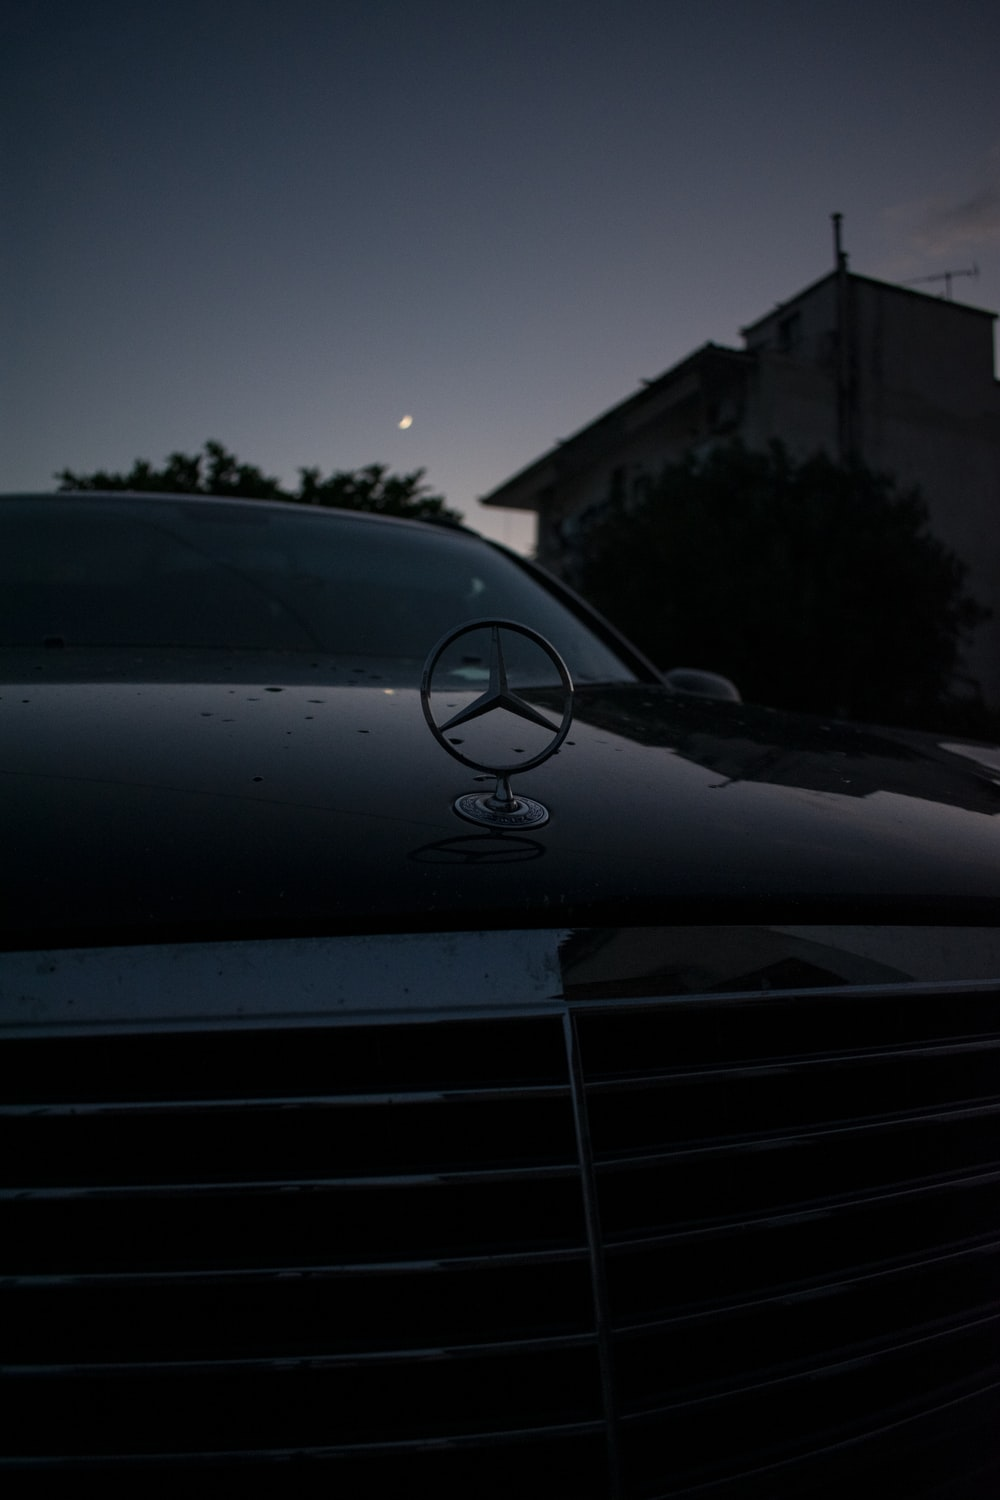 black Mercedes-Benz vehicle